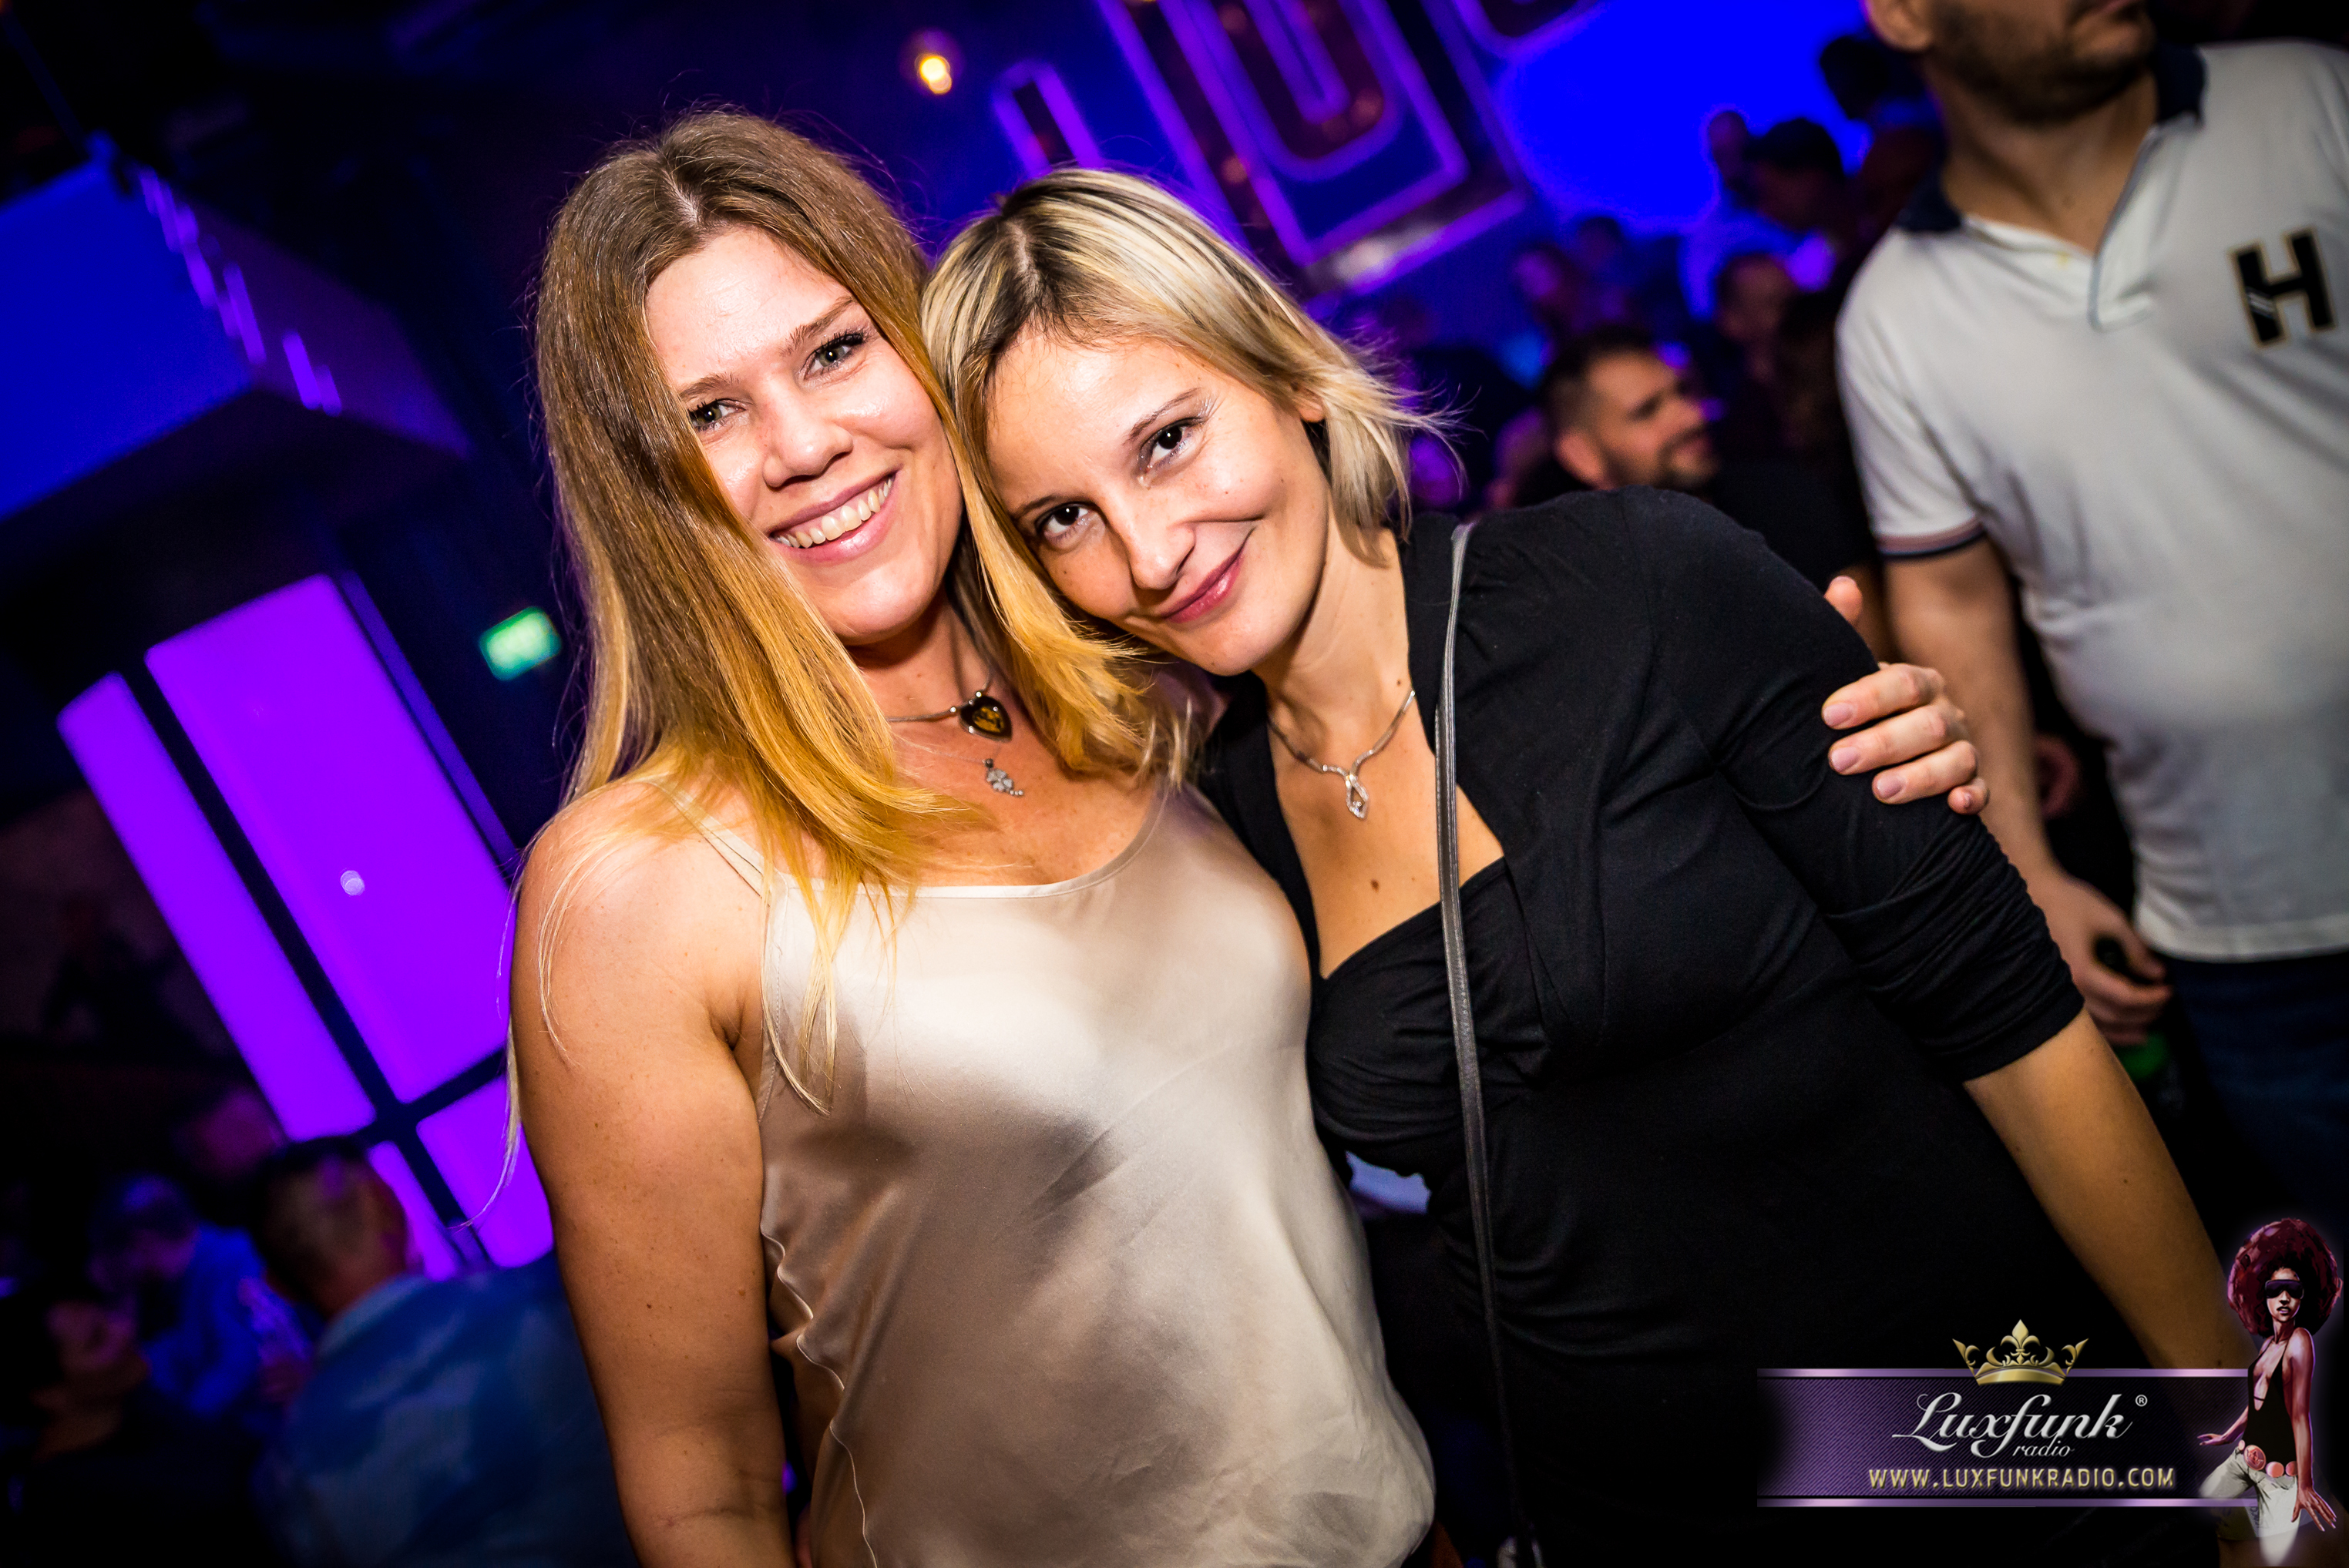 luxfunk-radio-funky-party-20191108-lock-budapest-1296